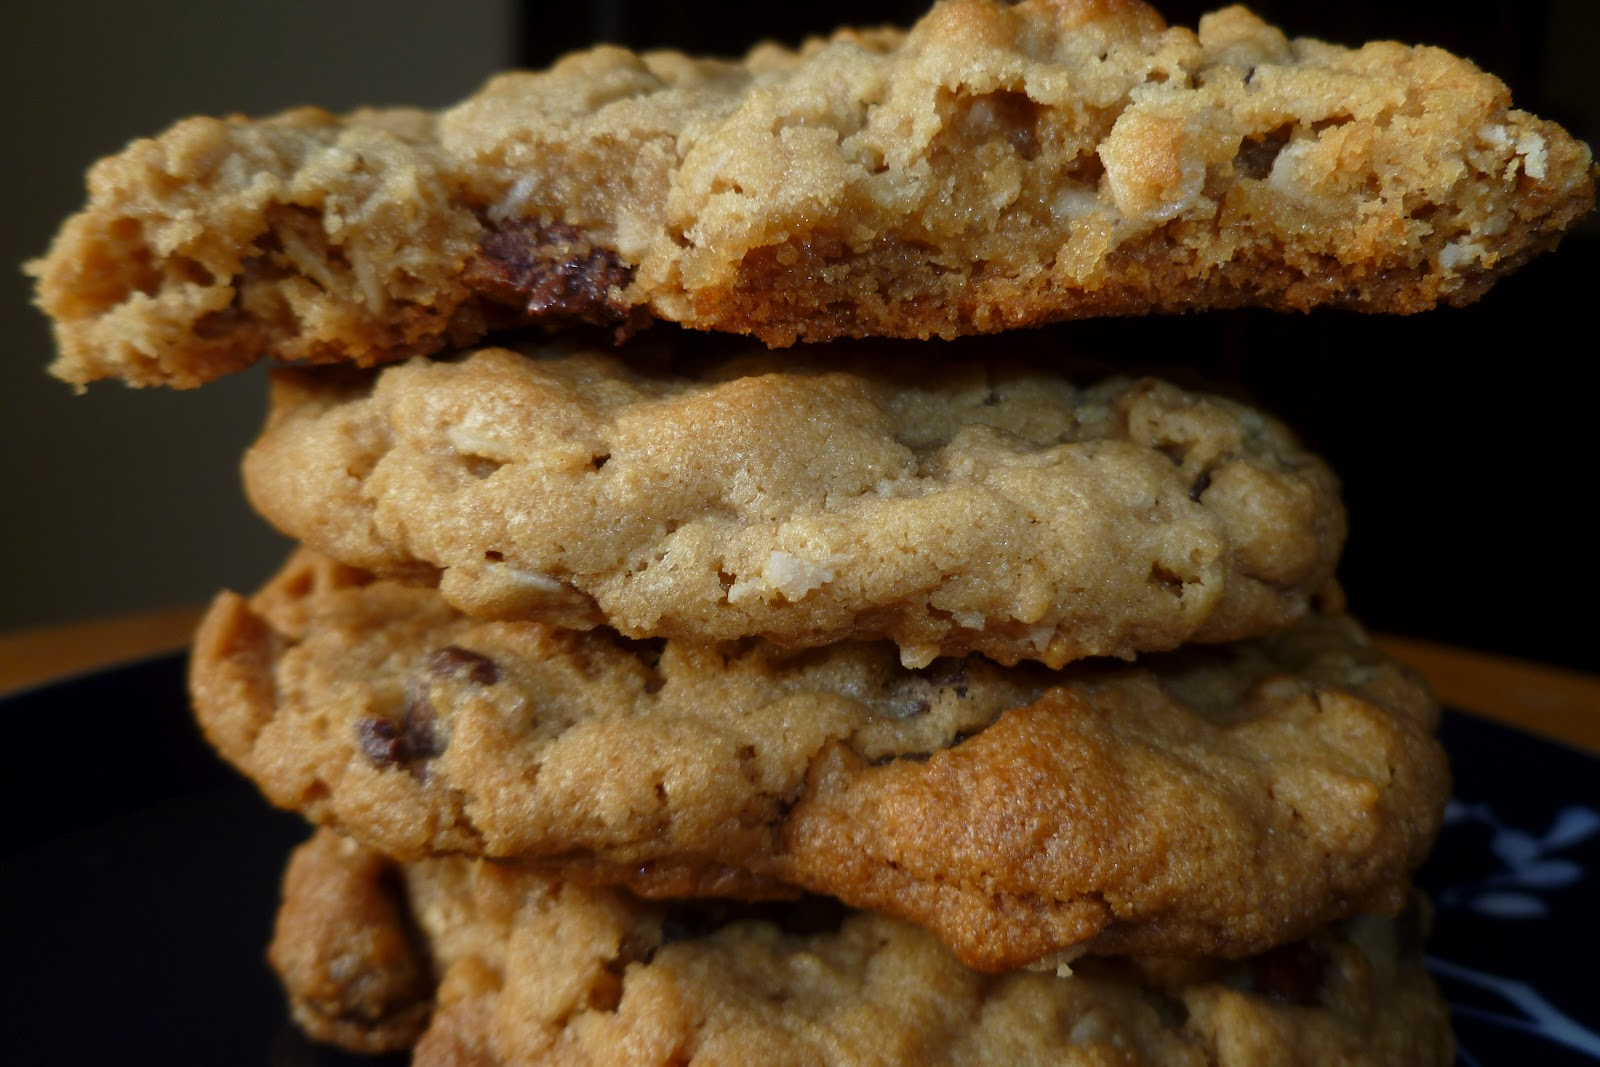 The Pastry Chef's Baking: Peanut Butter Oatmeal Chocolate Chip Cookies